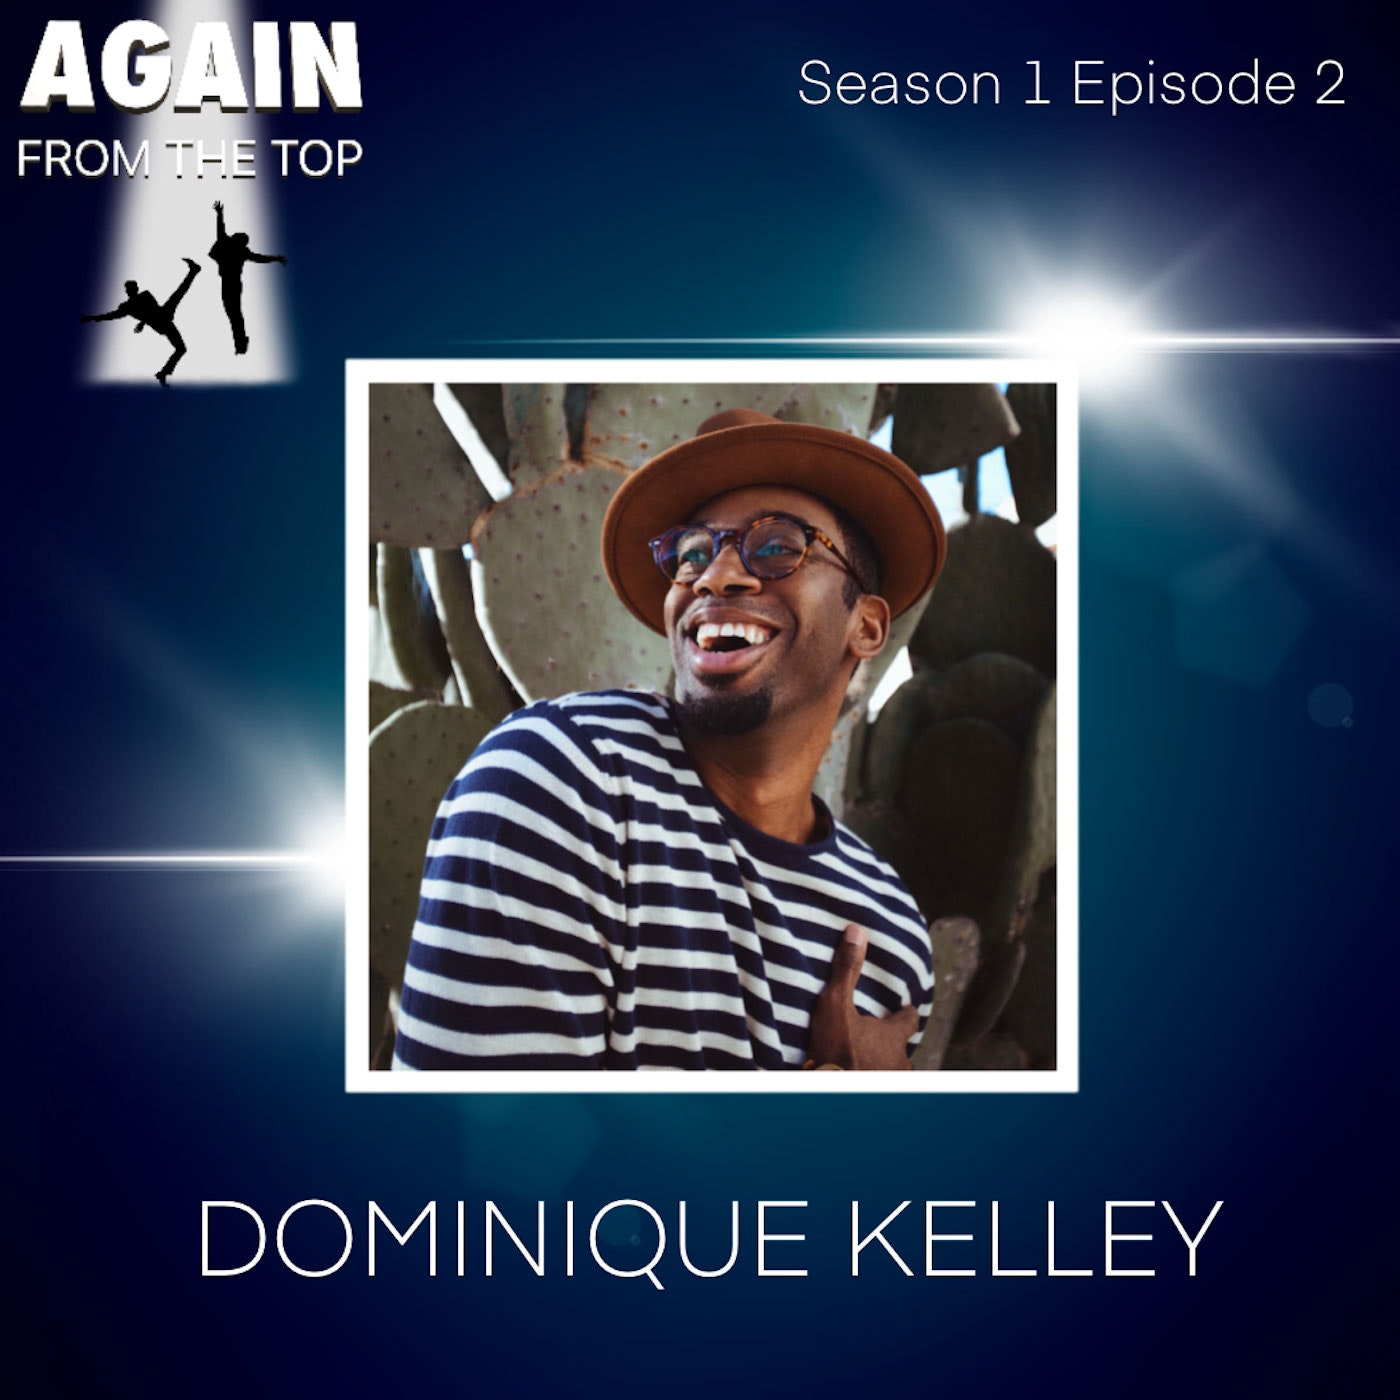 S1/Ep2: DOMINIQUE KELLEY'S HOMEMADE UNITARD AND PENNY LOAFERS